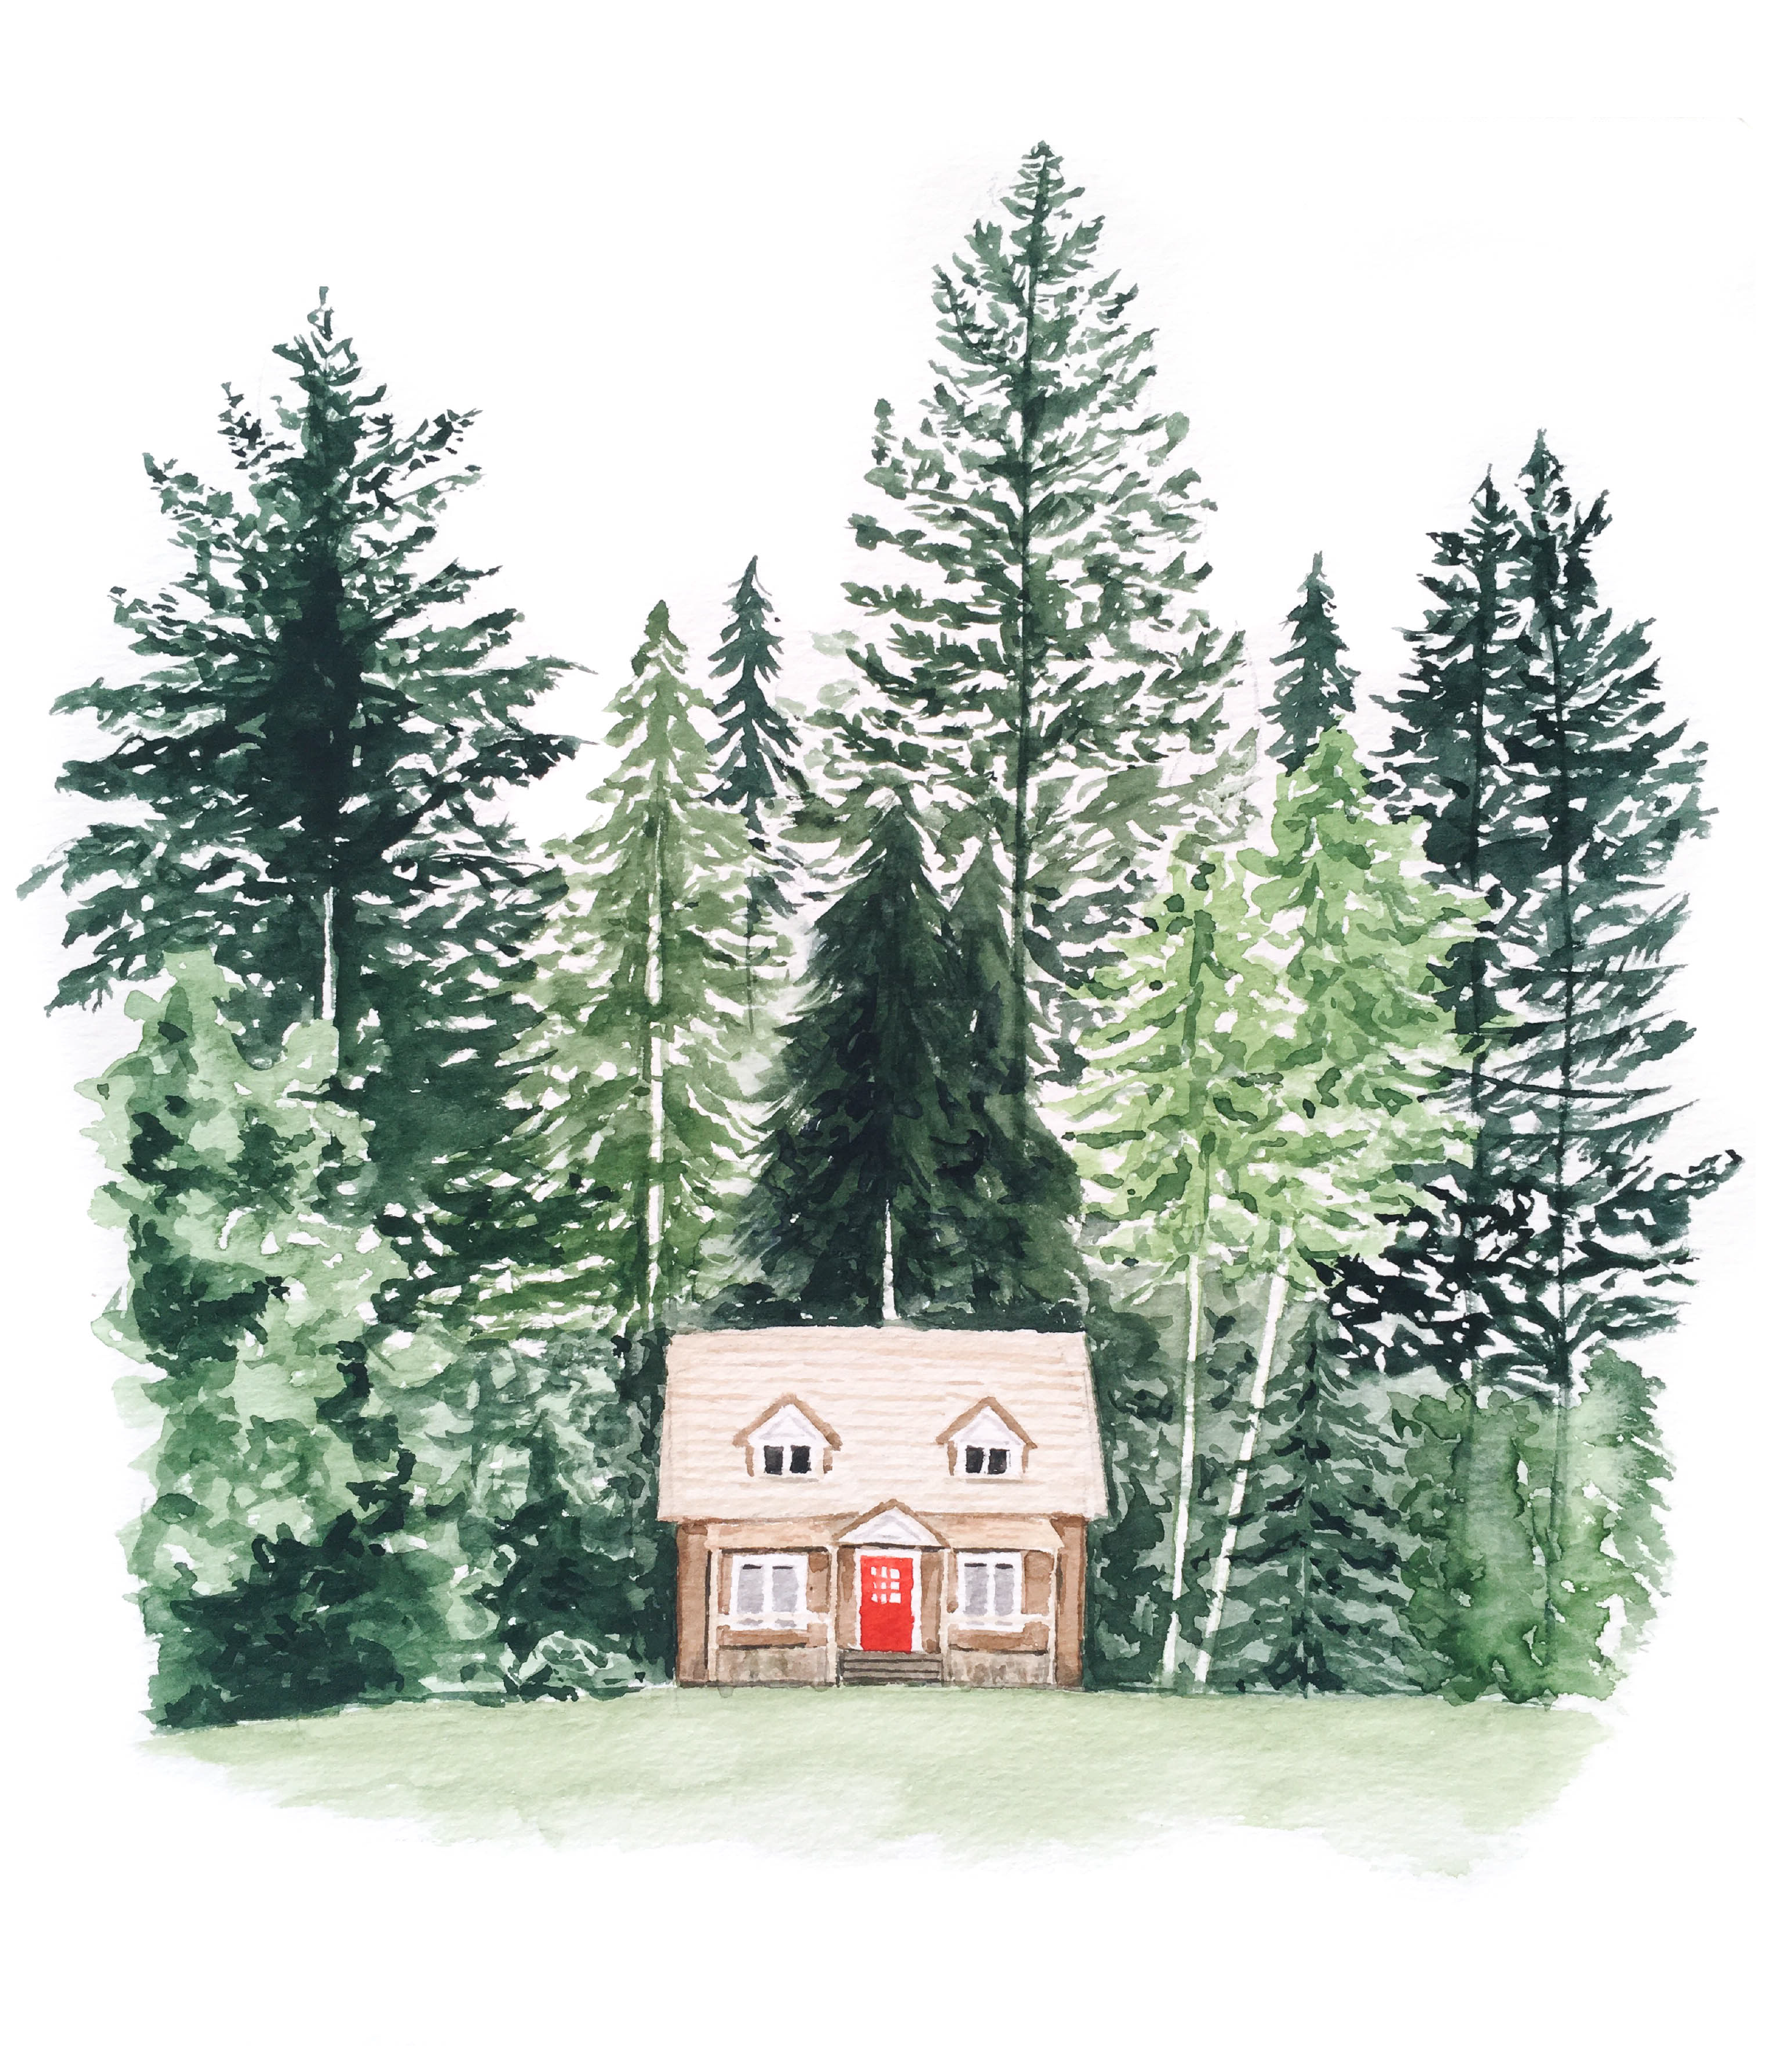 cabin in the woods-01.png